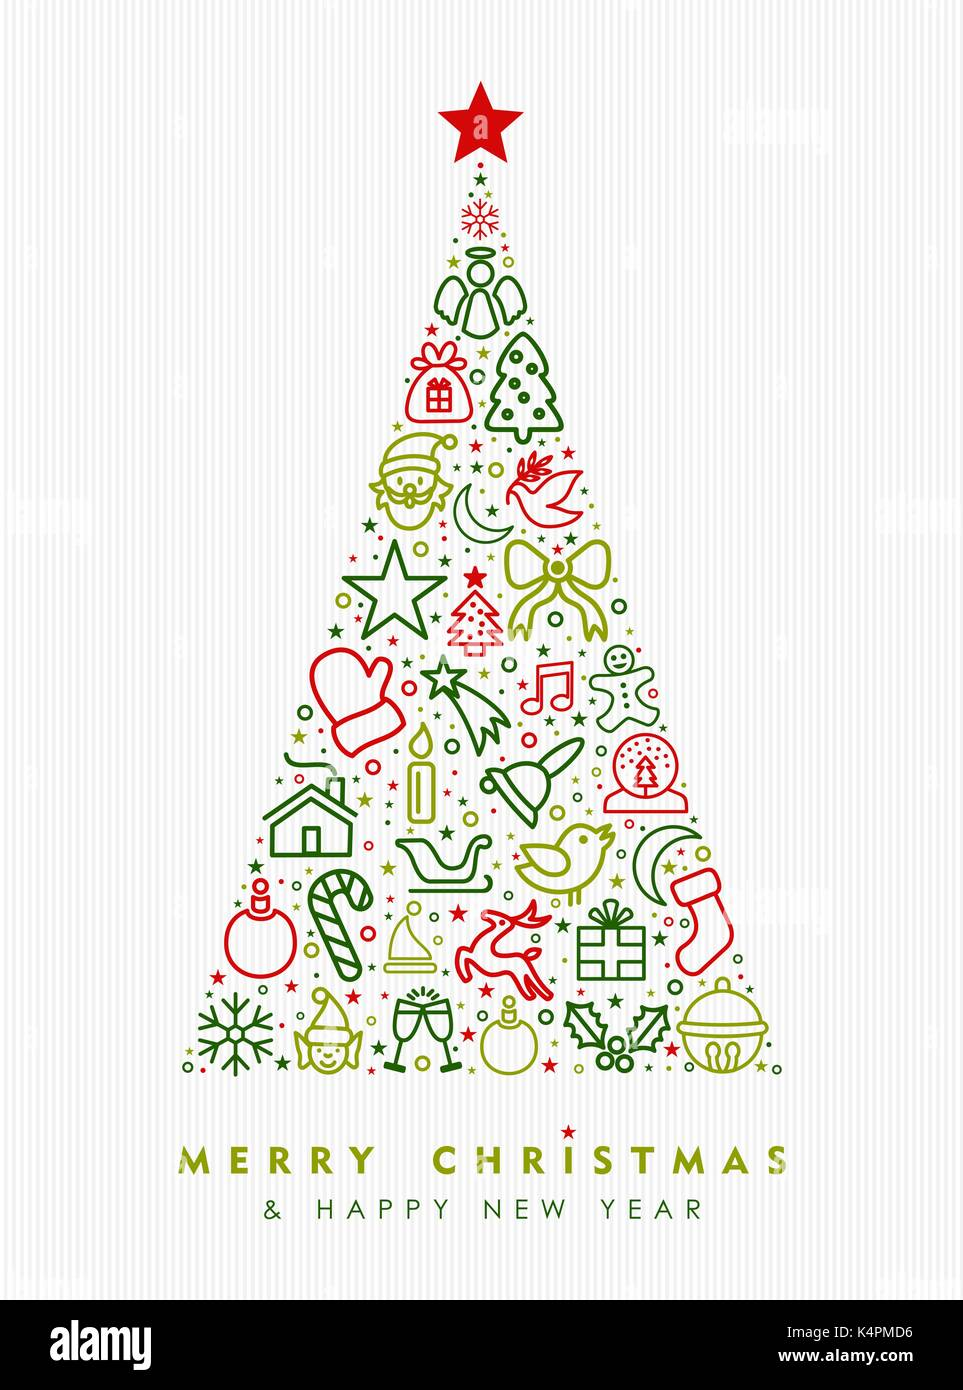 merry christmas and happy new year greeting card design holiday line art icon illustration making pine tree shape eps10 vector